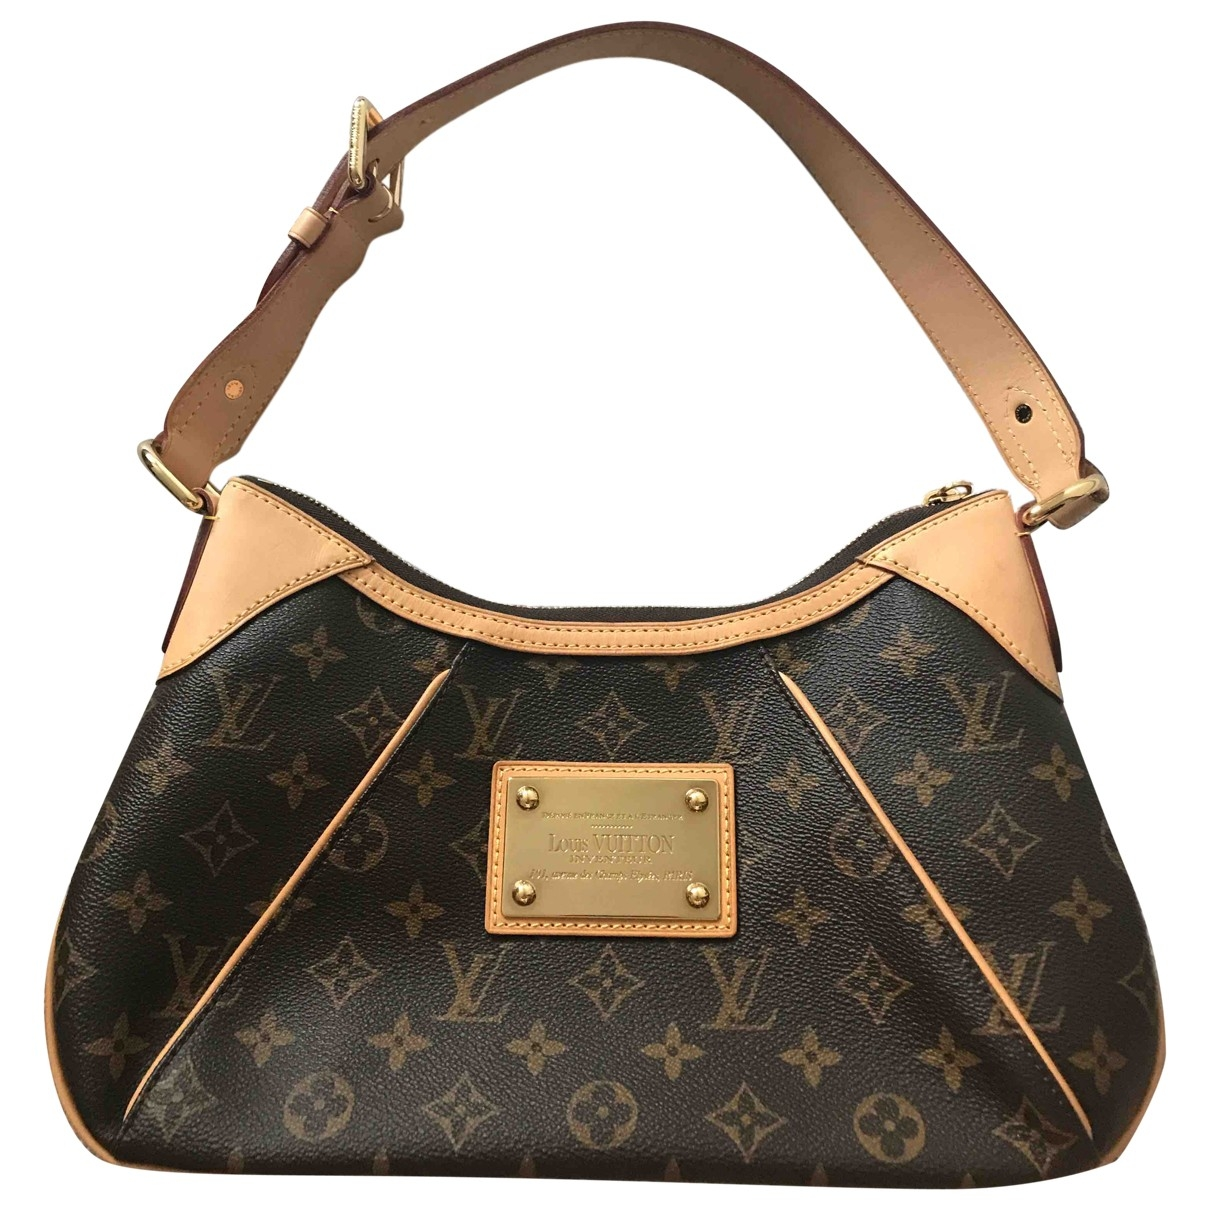 Louis Vuitton Galliera Handtasche in  Braun Leinen